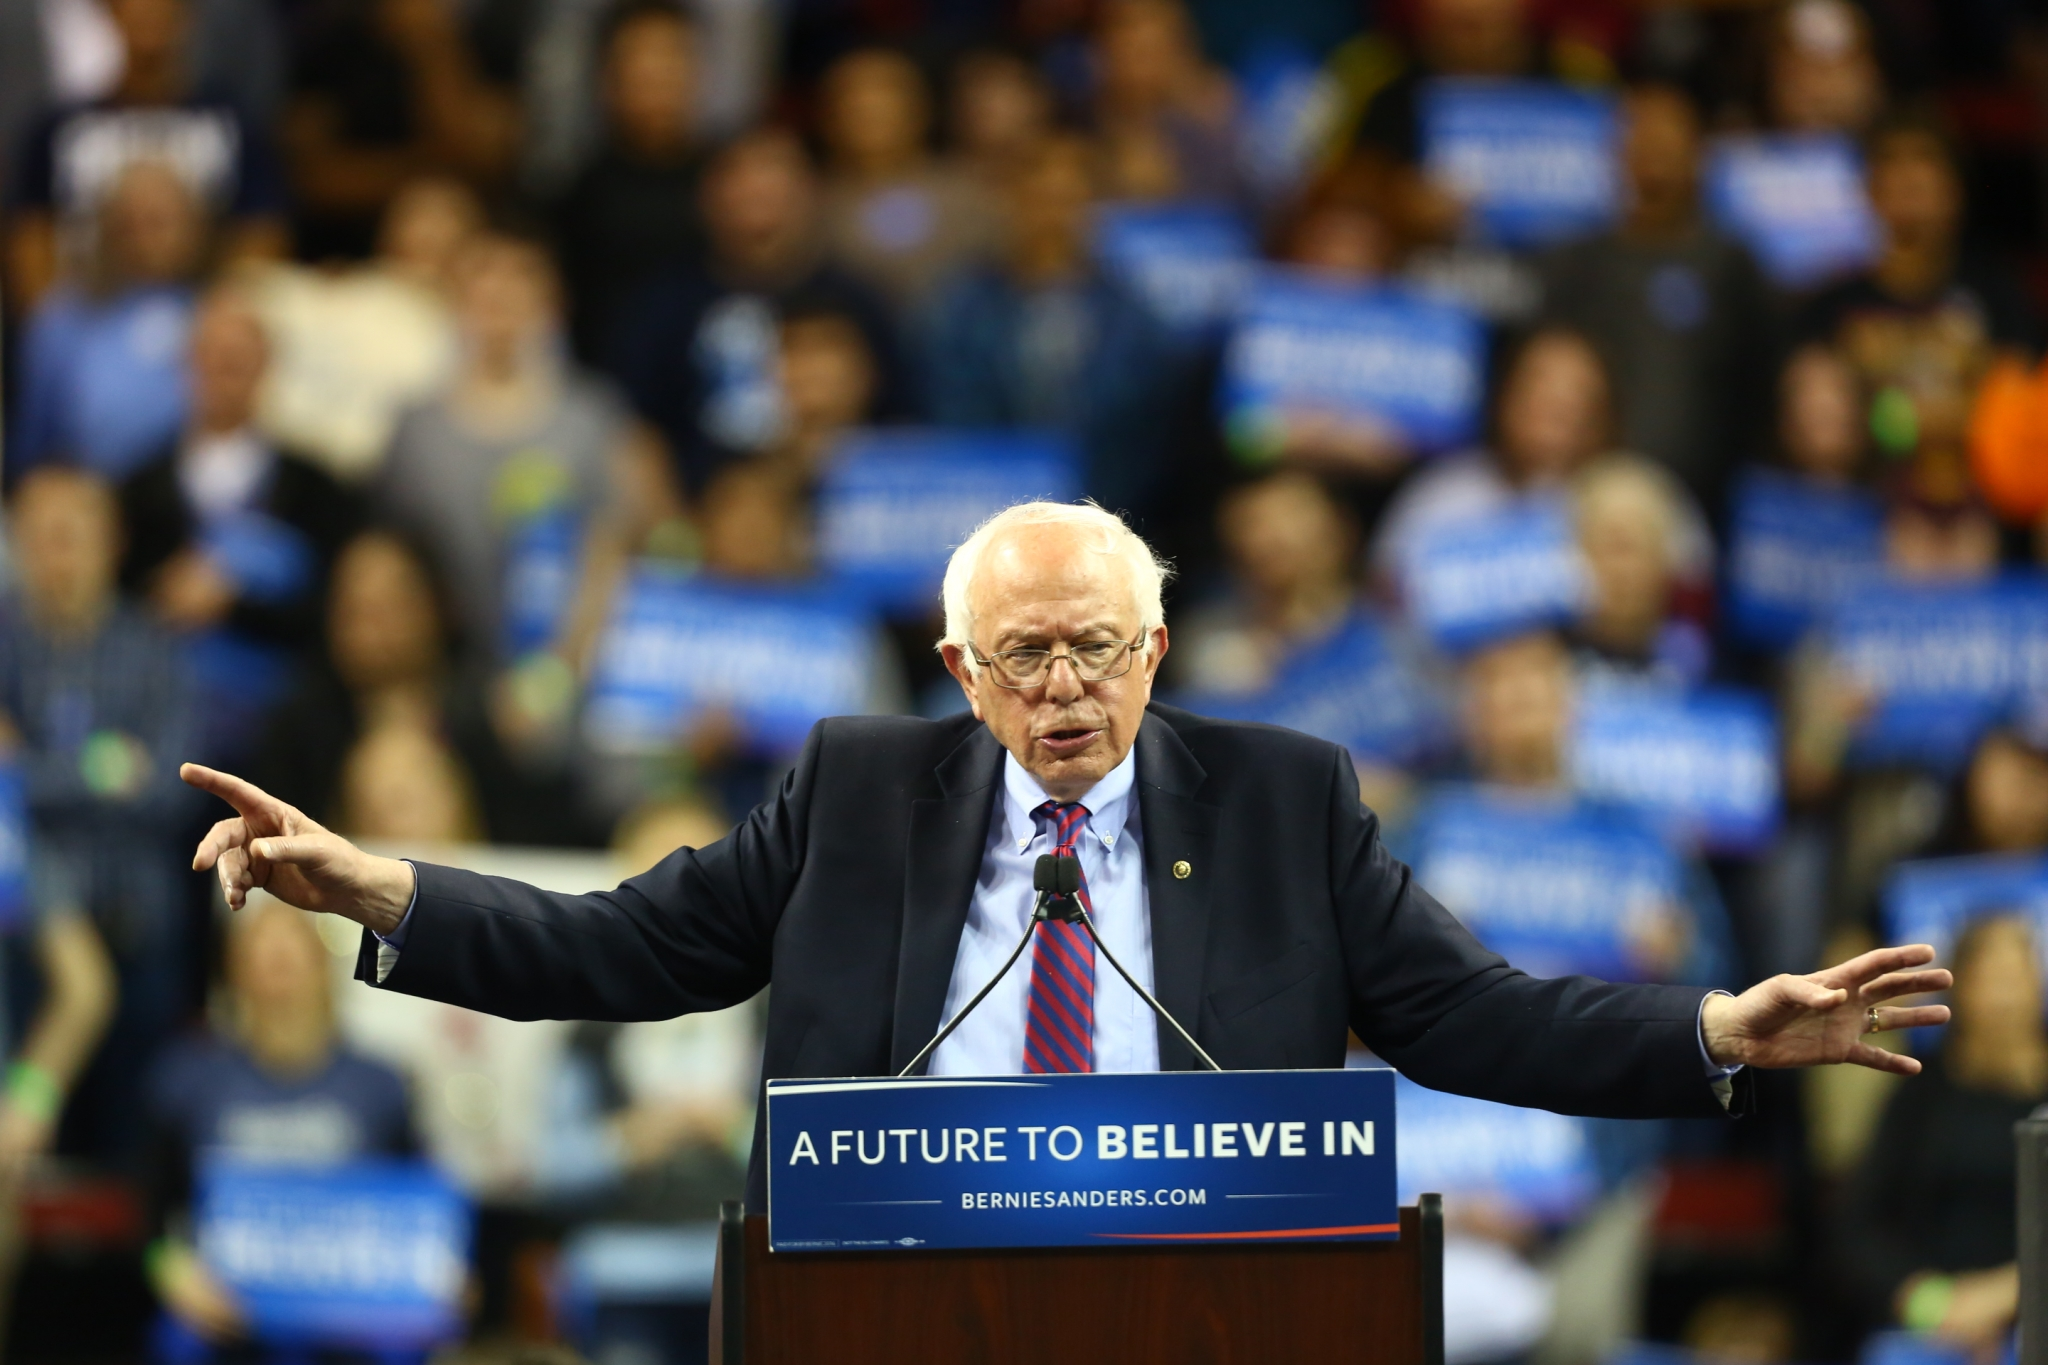 Washington primary poll: Bernie Sanders leads at 21% with 'core support'